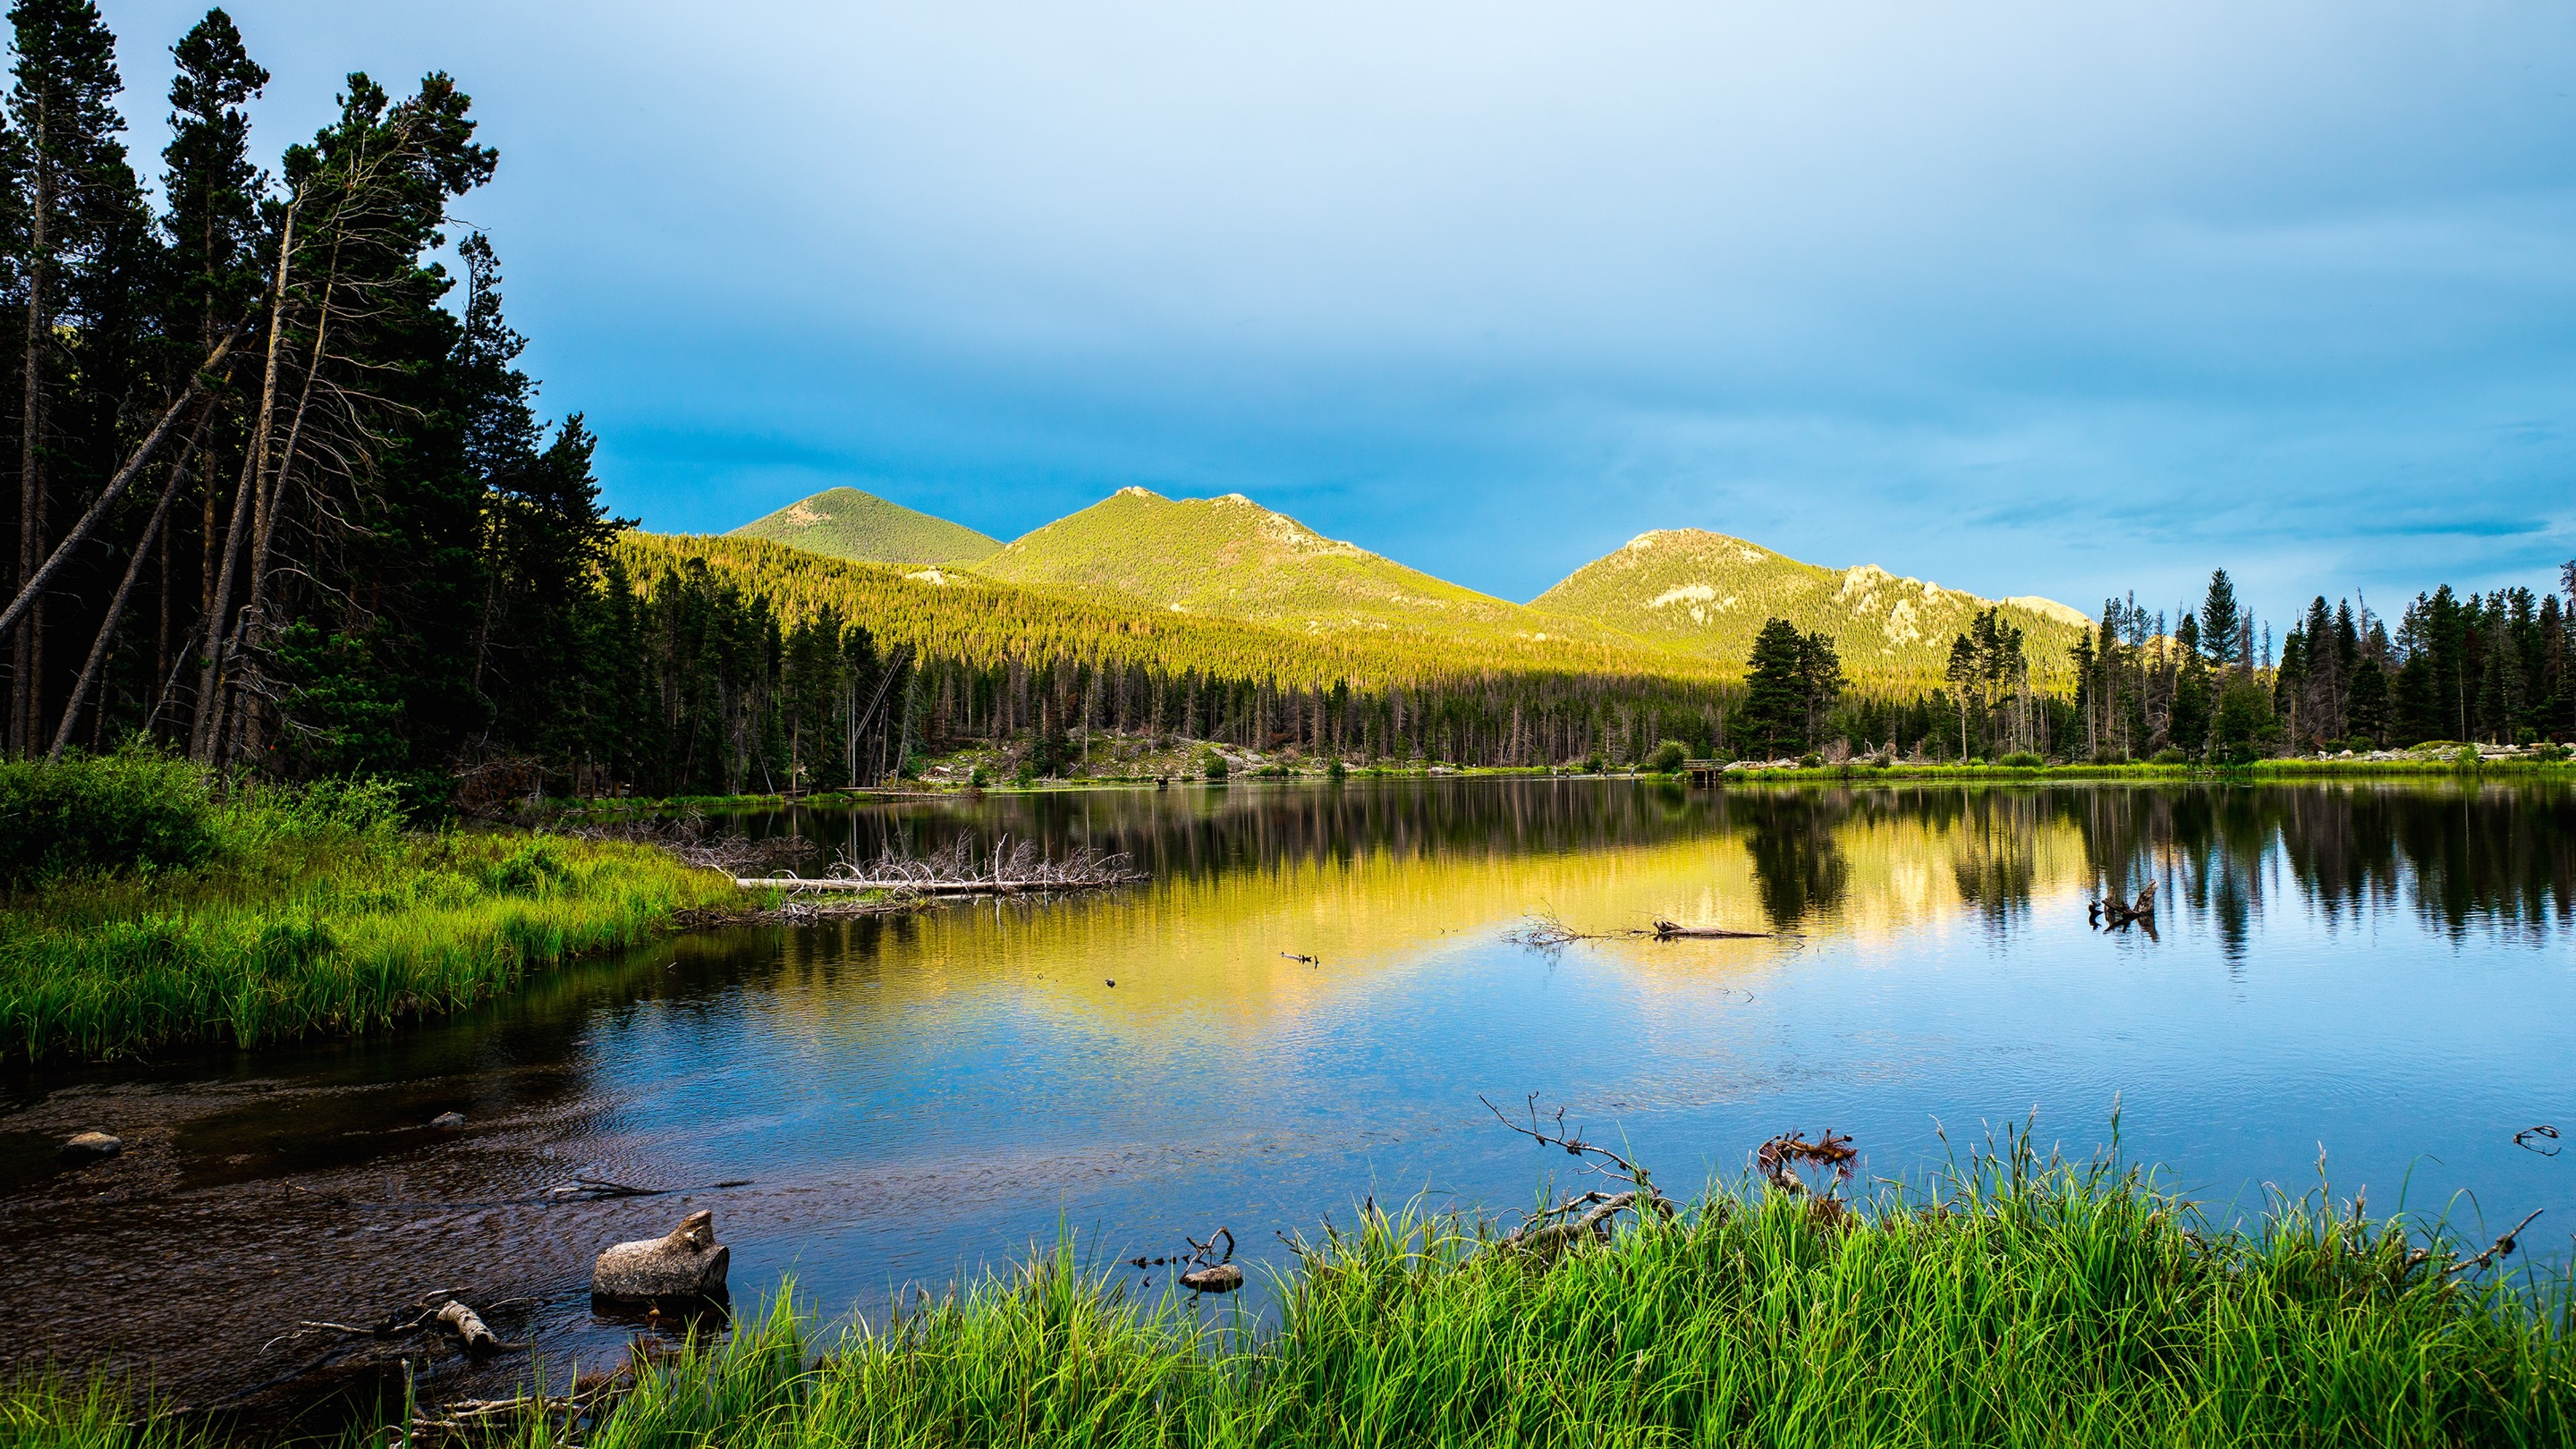 rocky mountains national park 1535930783 - Rocky Mountains National Park - nature wallpapers, national park wallpapers, mountains wallpapers